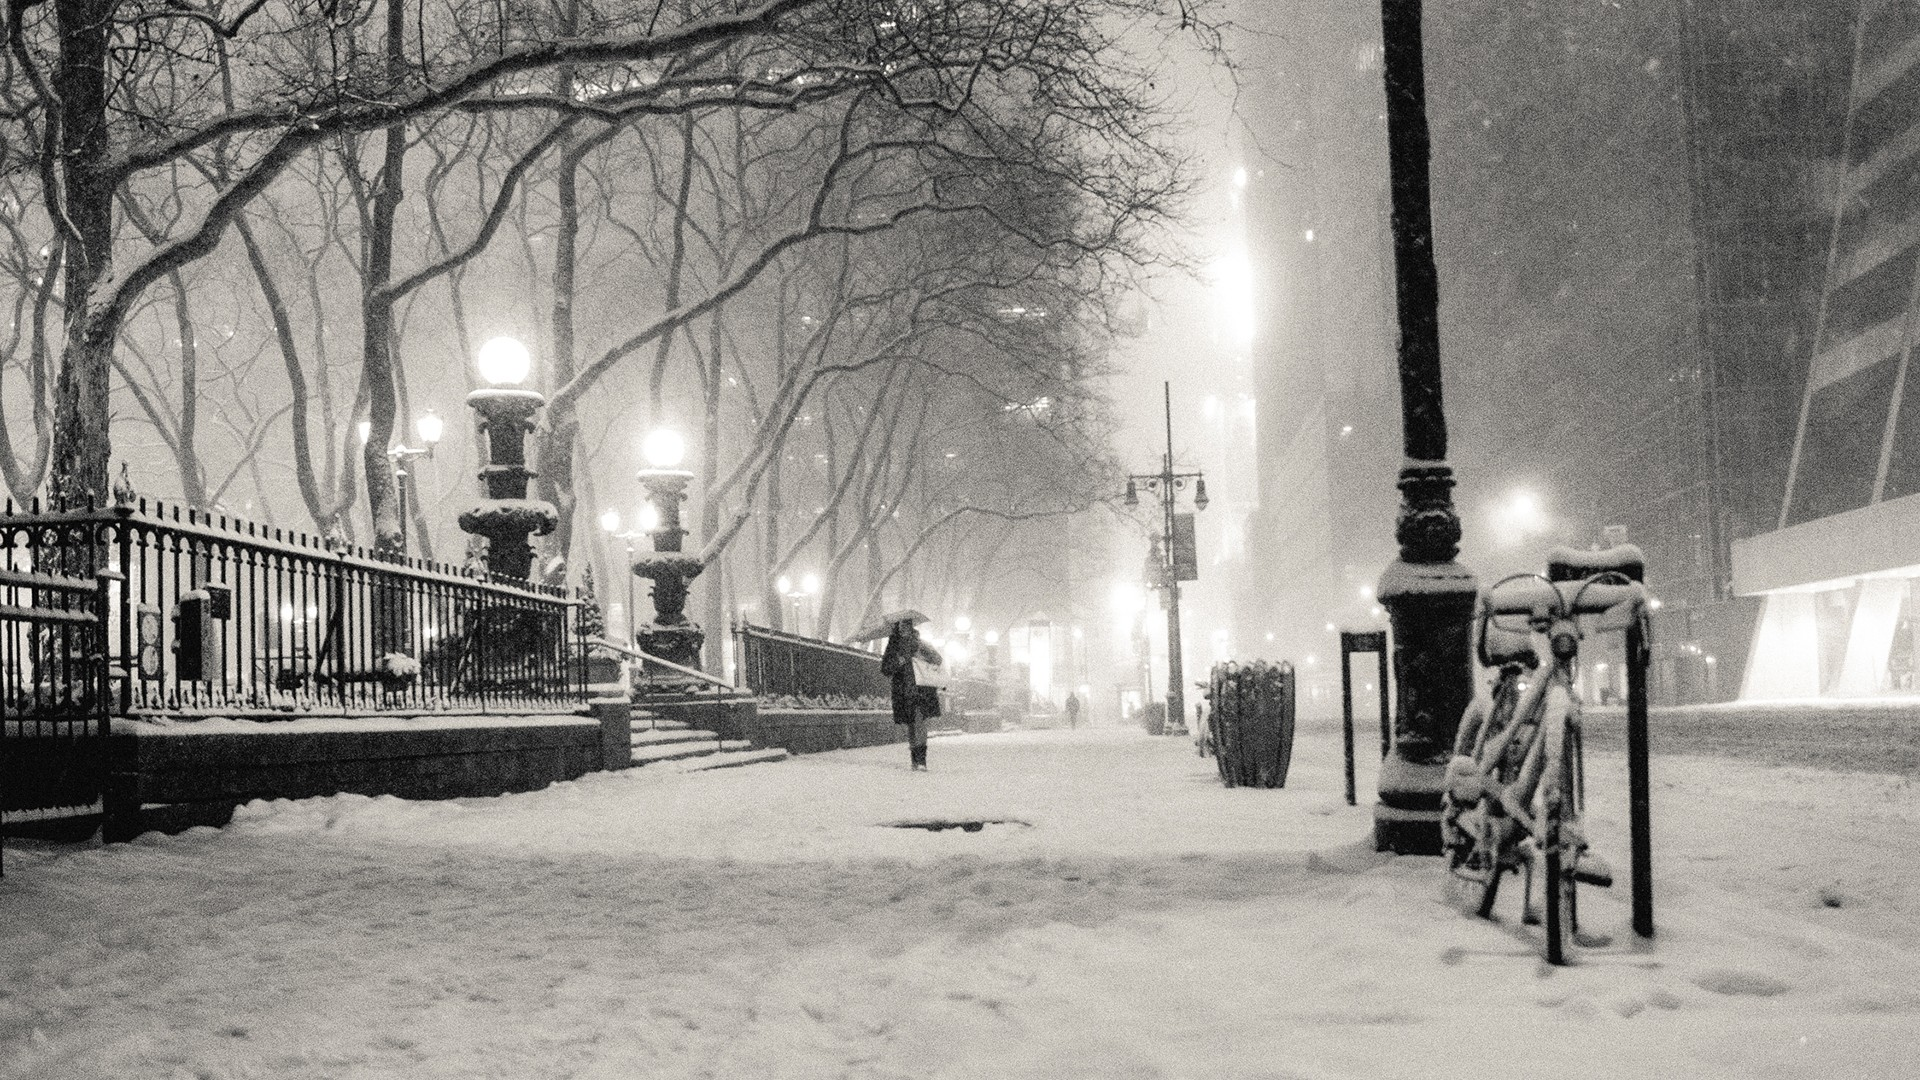 Wallpapers black and white winter snow New York City monochrome 1920x1080